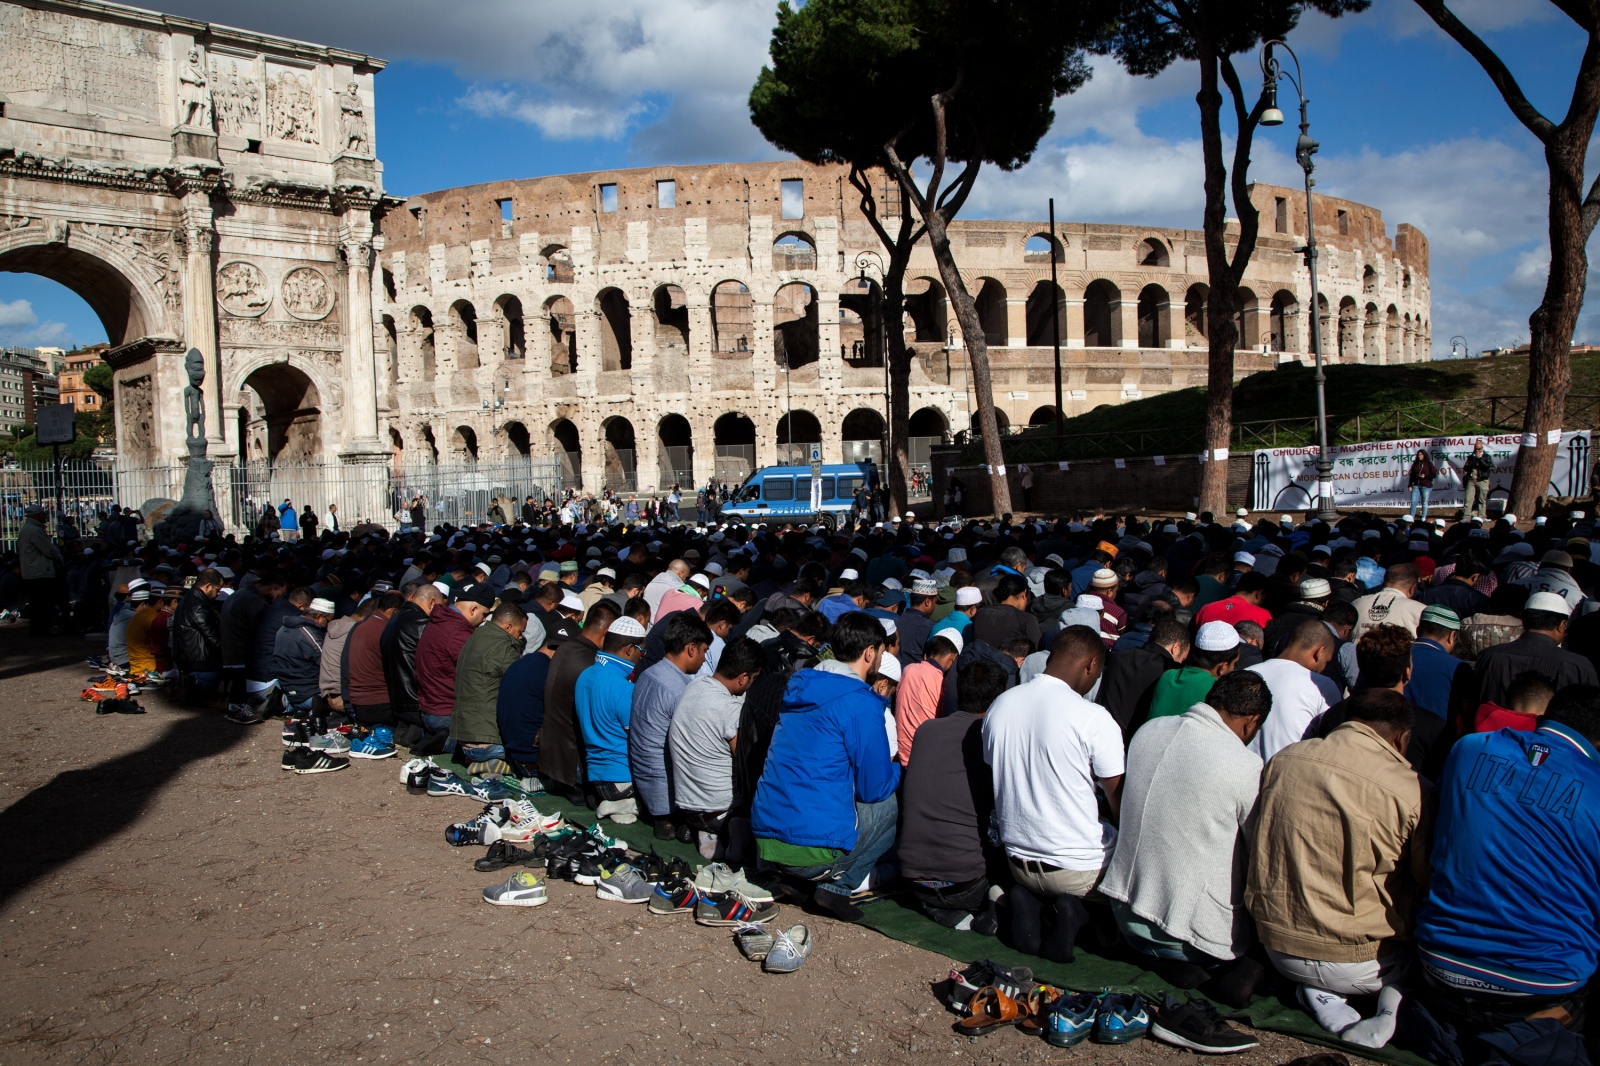 Hundreds of members of the Muslim community of Rome are gathered for the Friday communal prayer in front of the Colosseum, to protest against the closure of a few mosque in the southeastern part of the city.